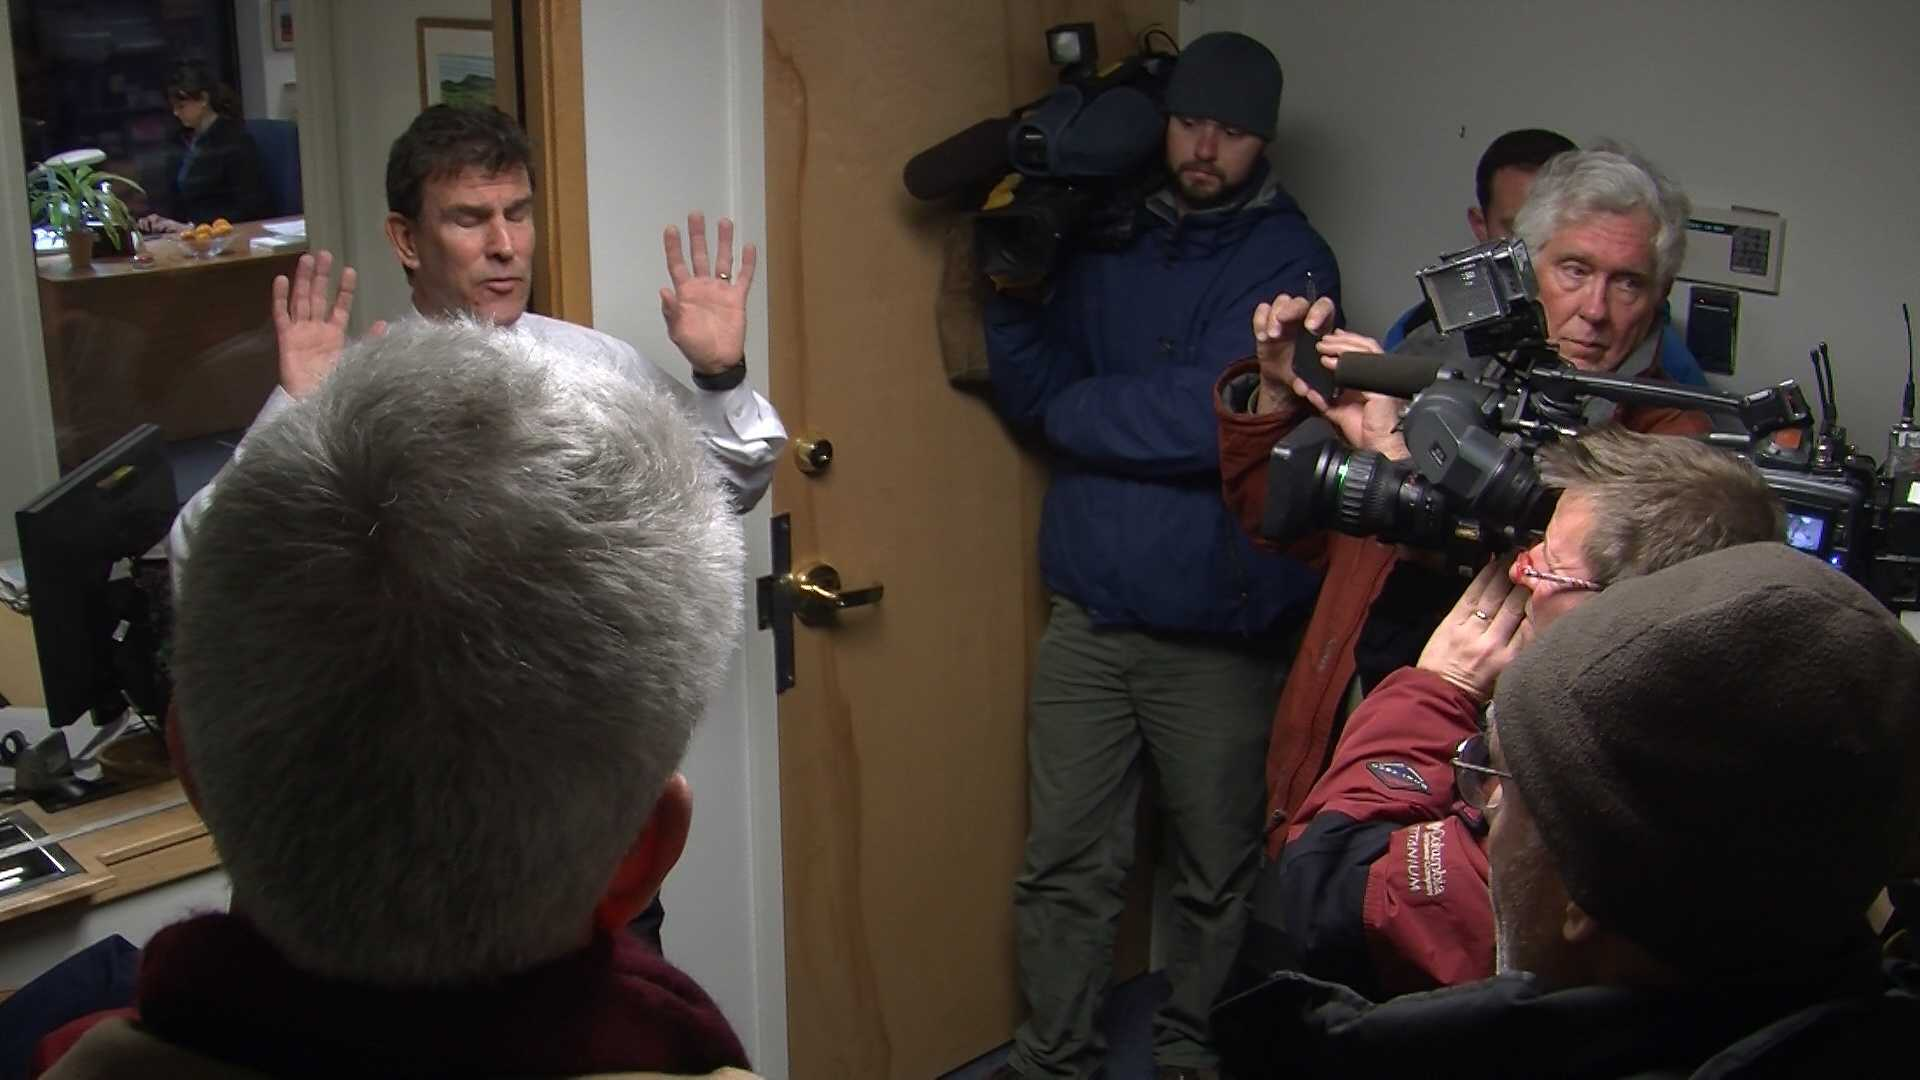 121212 F-35 opponents swarm Sen. Leahy's office - img